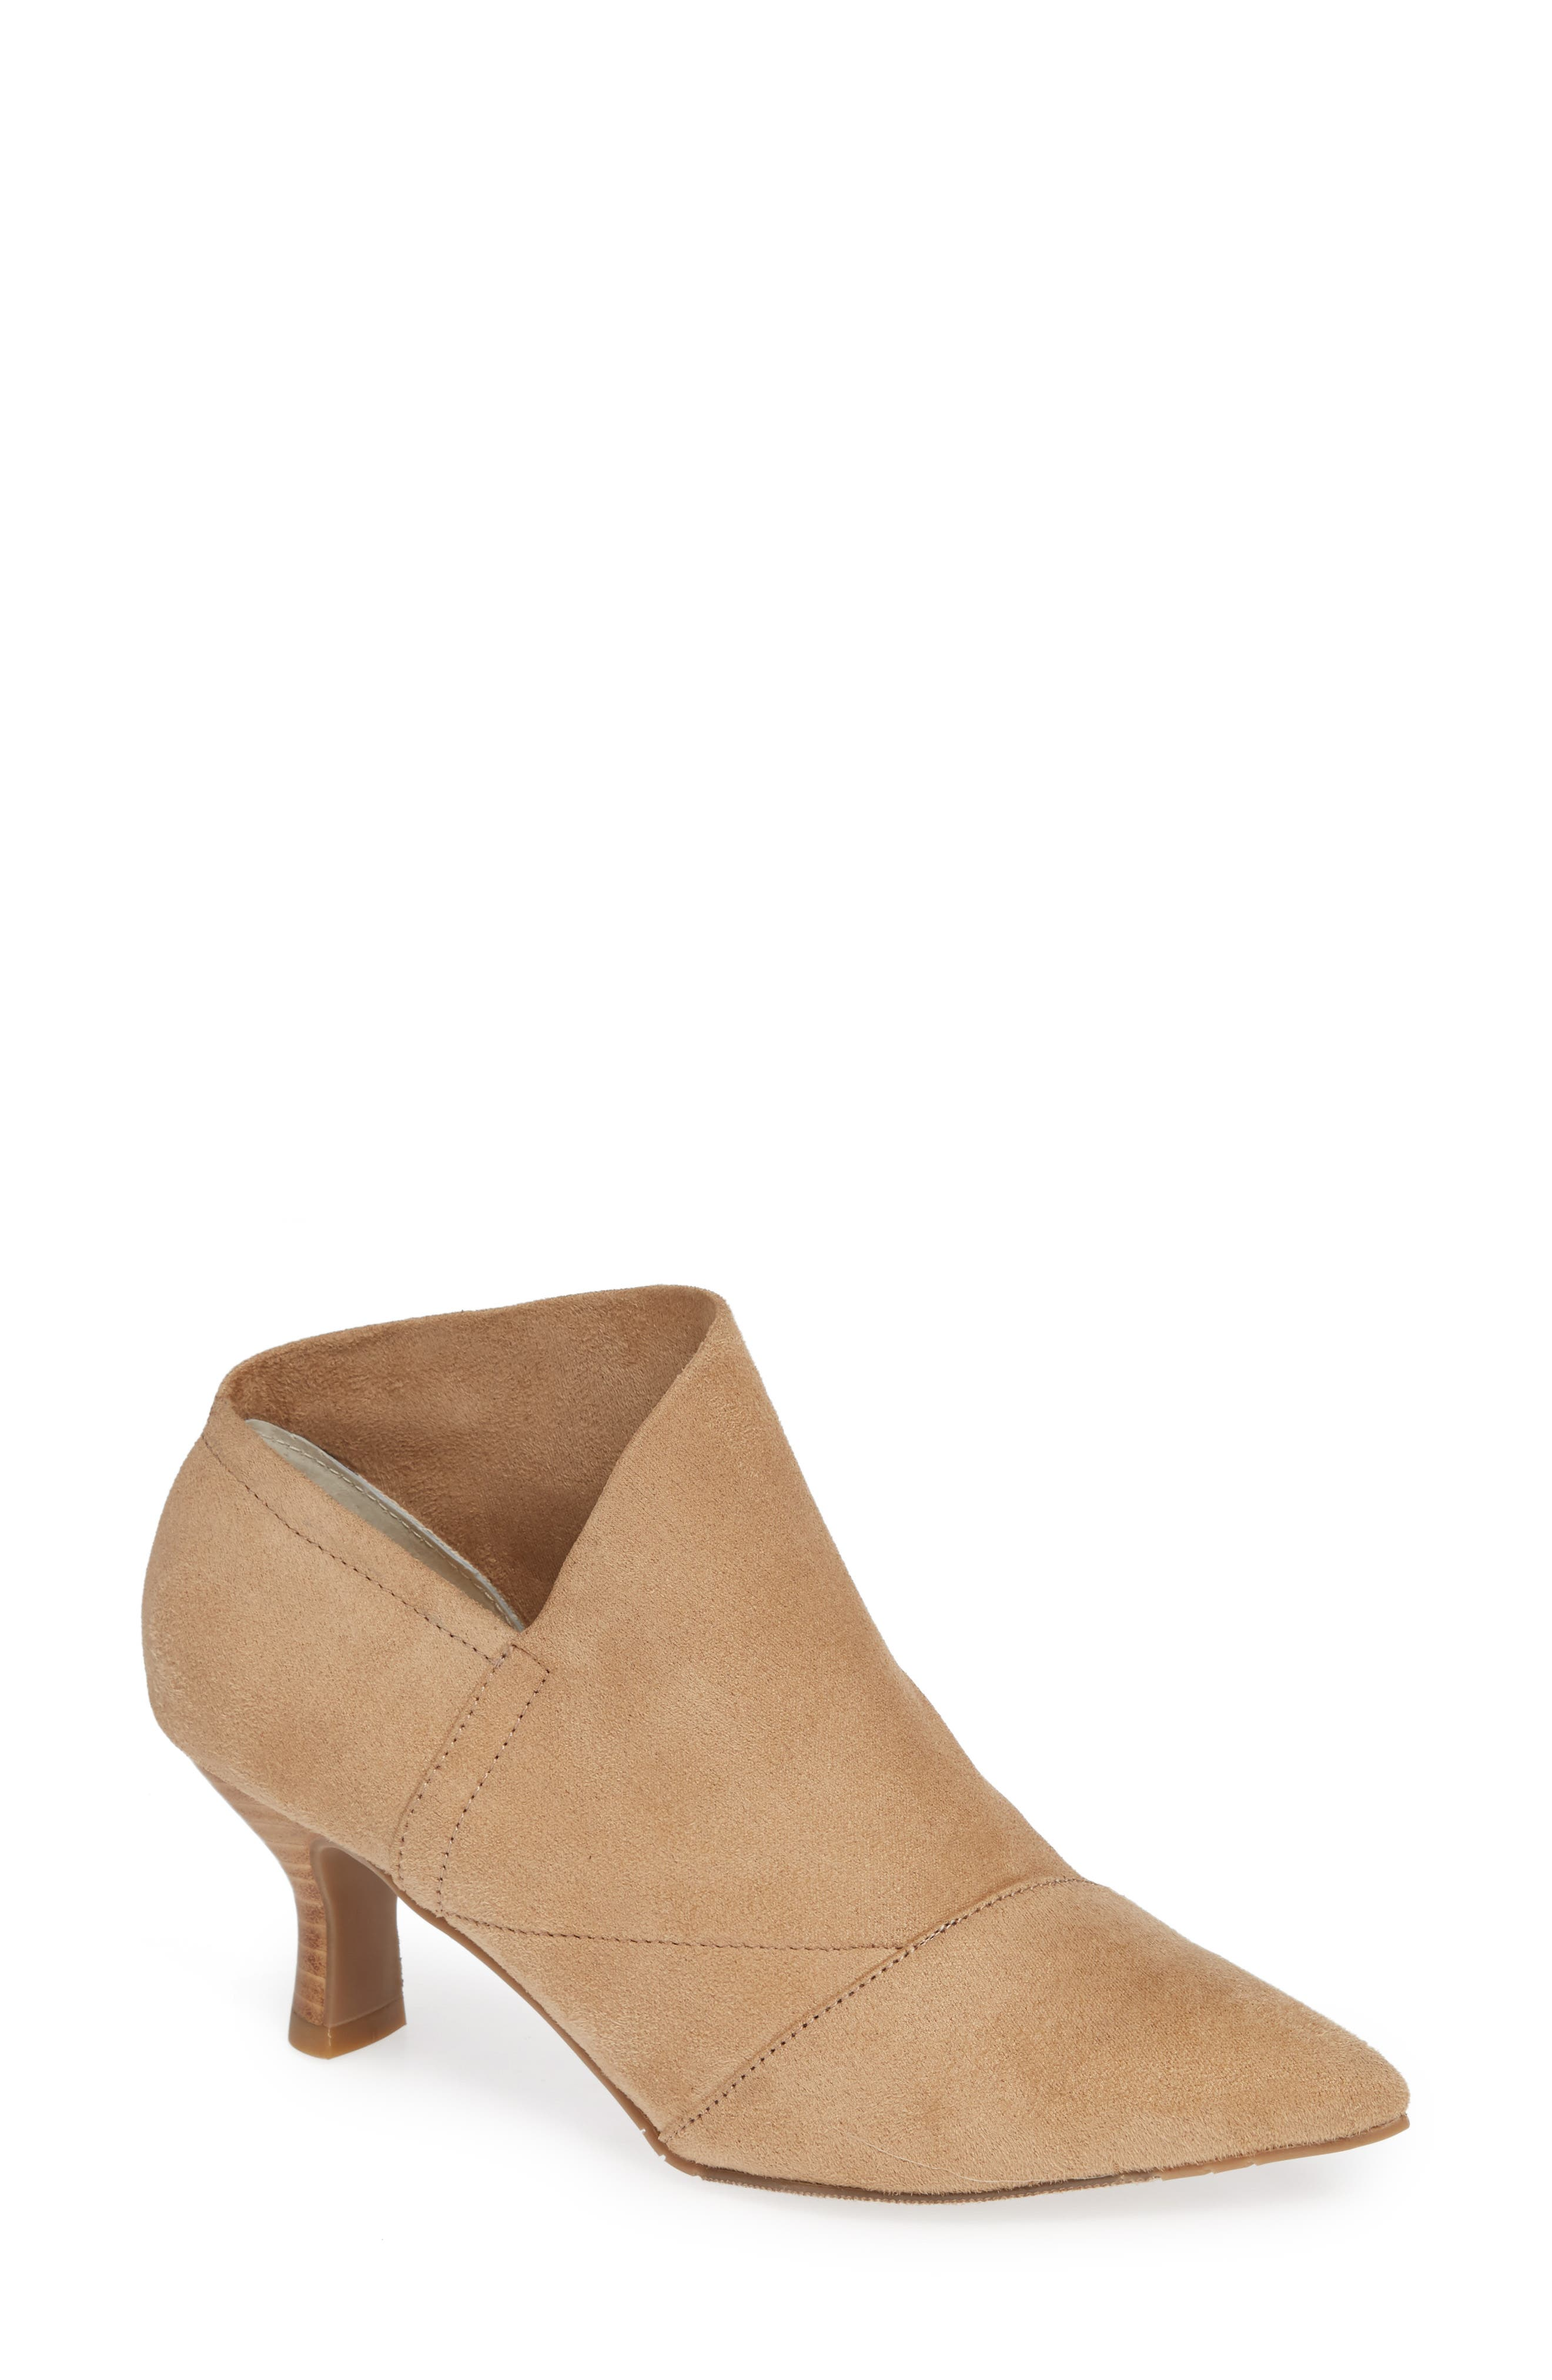 Hayes Pointy Toe Bootie,                             Main thumbnail 1, color,                             OAT SUEDE